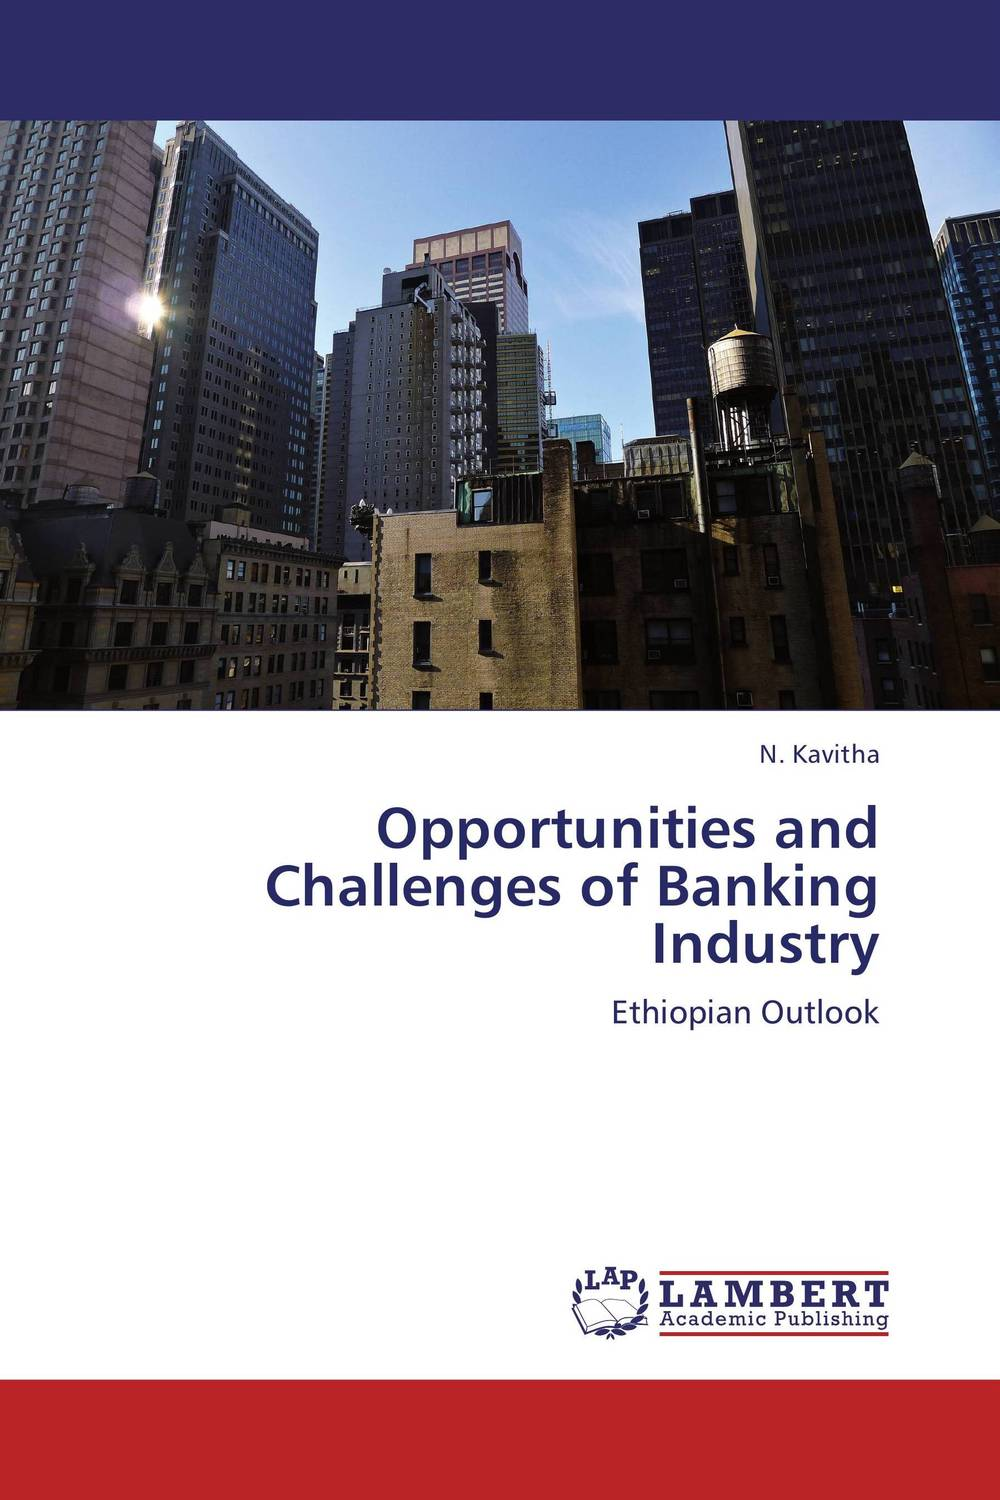 Opportunities and Challenges of Banking Industry developmental state and economic transformation the case of ethiopia